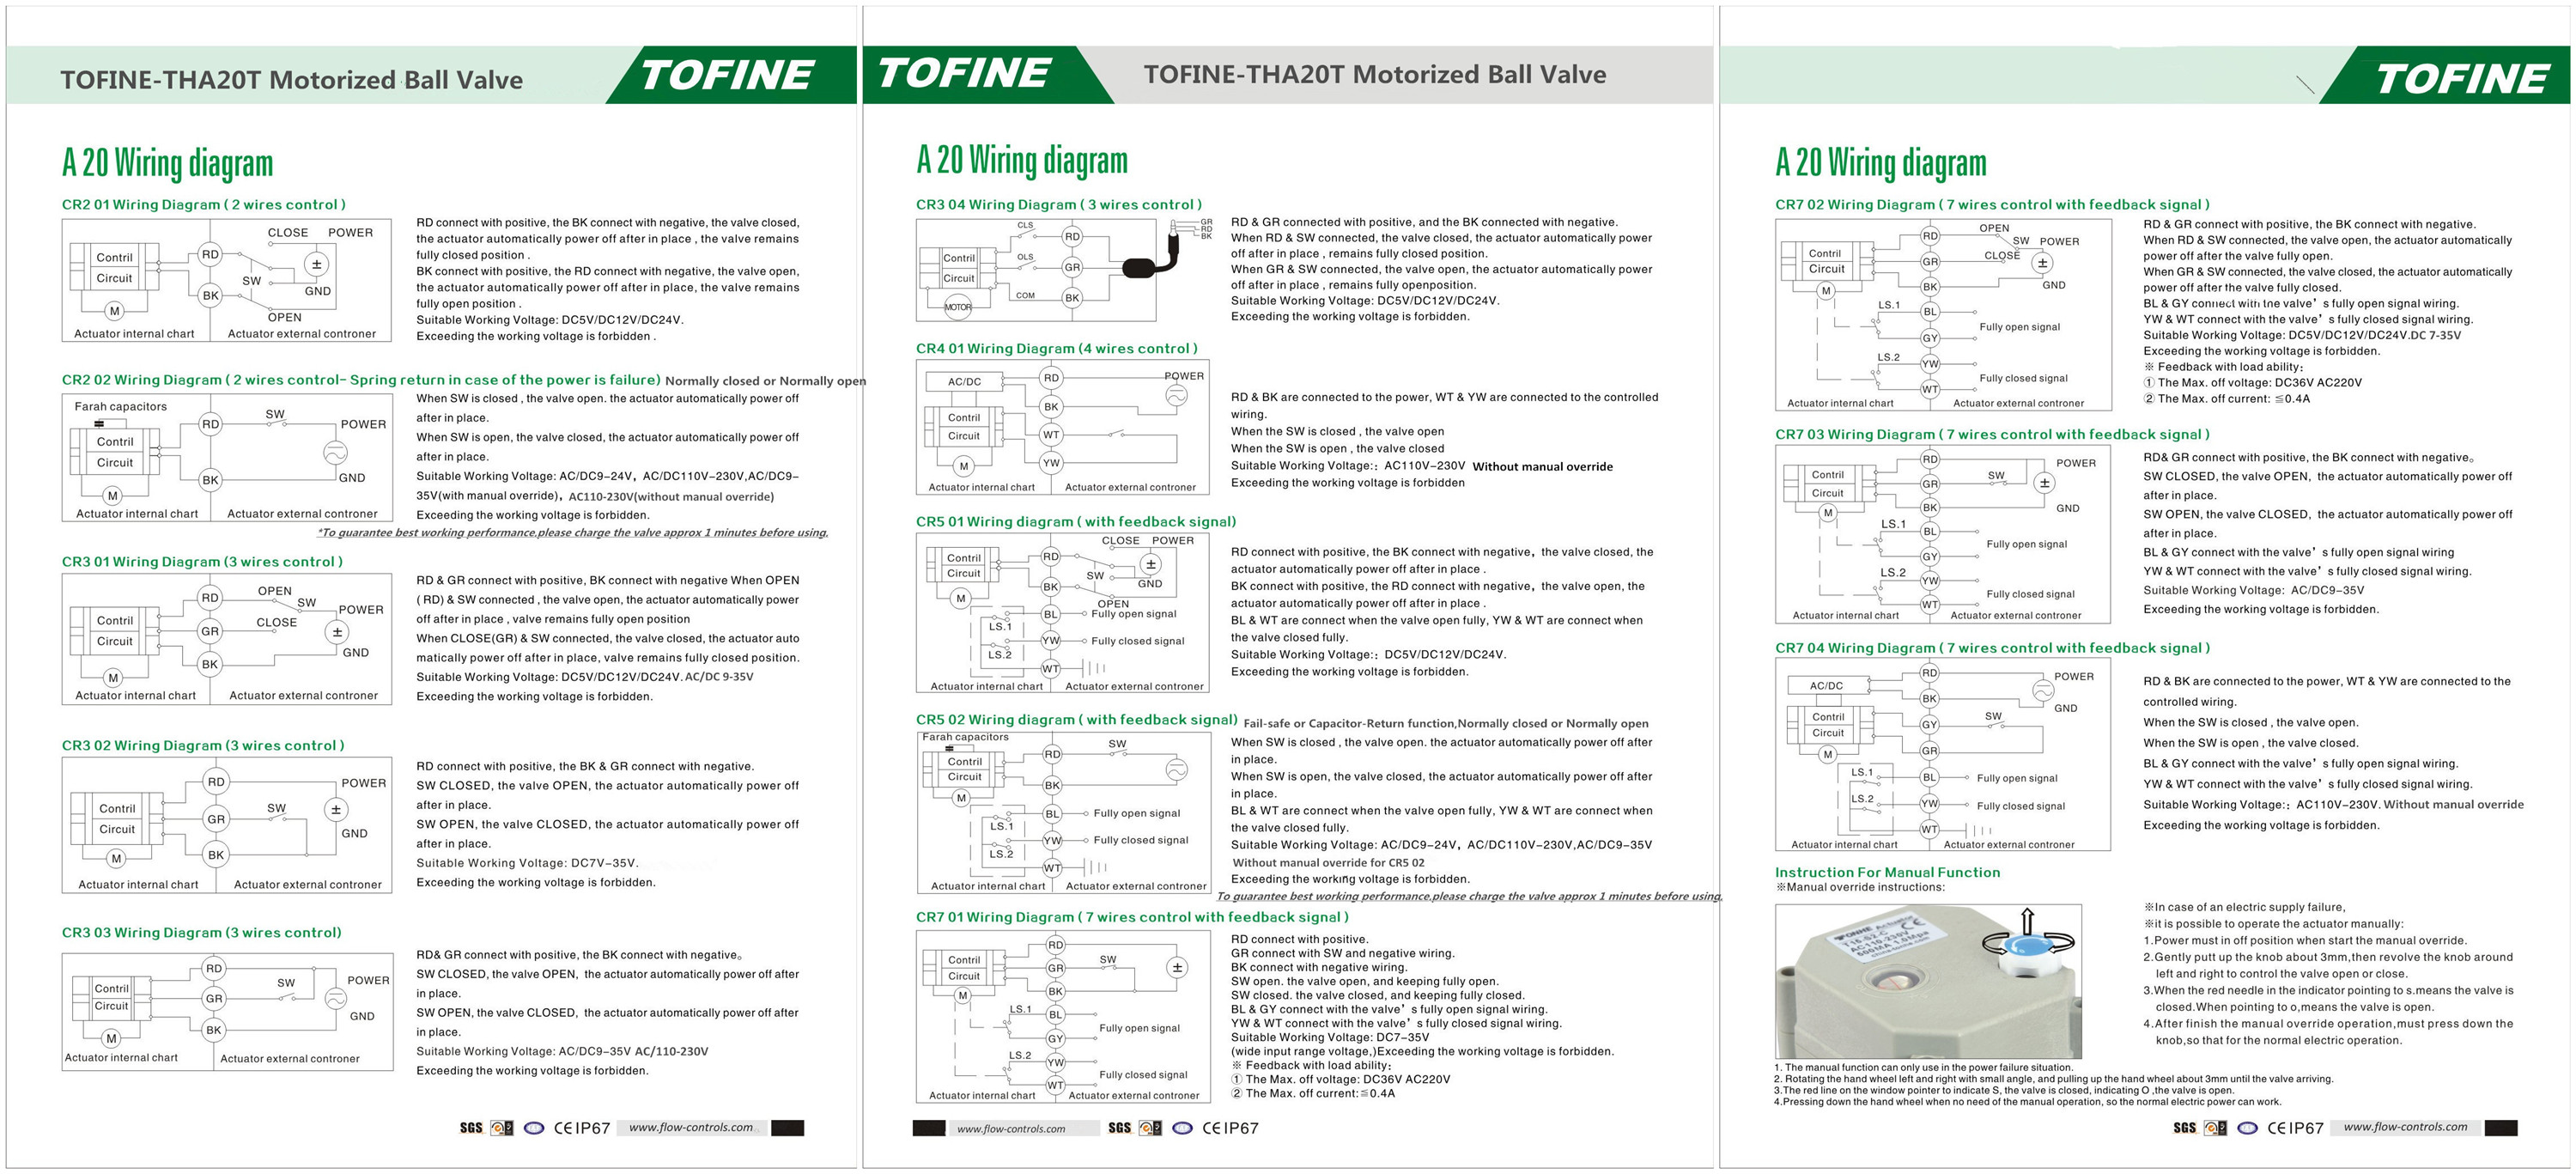 Wirings For Tofine Tha20t Motorized Ball Valves 7 Wire Wiring Diagram Technical File Download